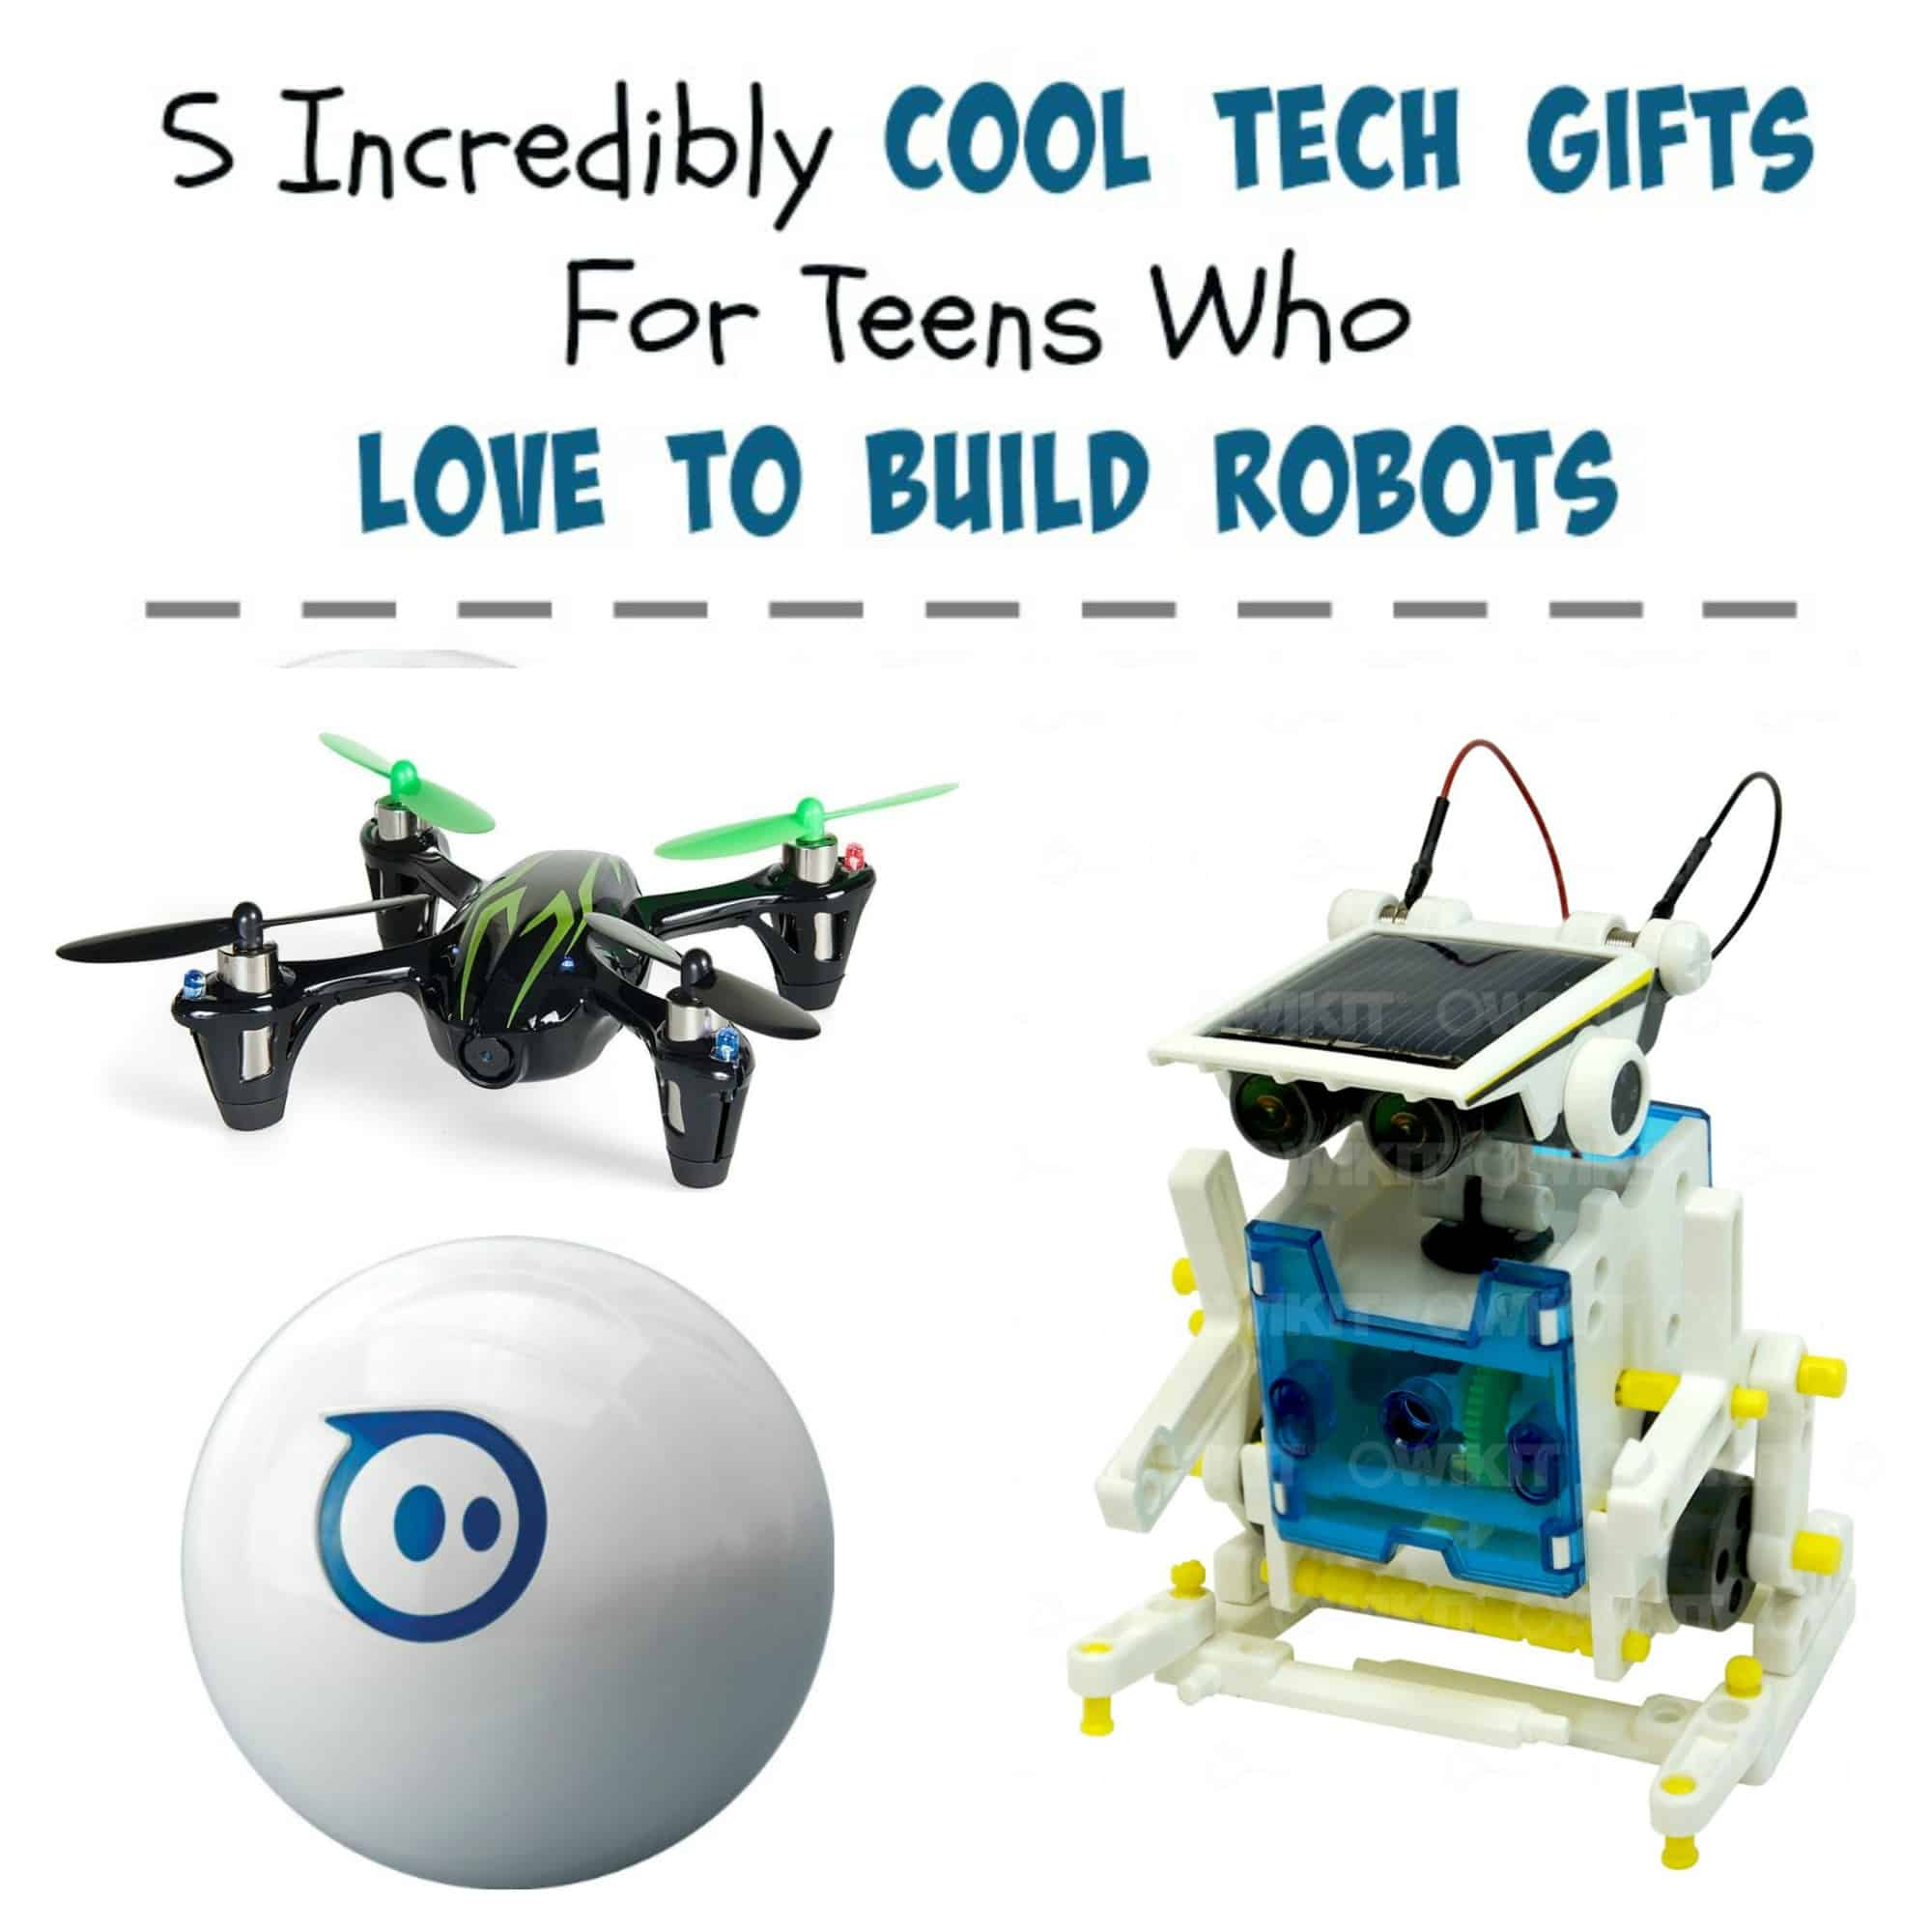 cool tech gifts 5 incredibly cool tech gifts for who to build 28960